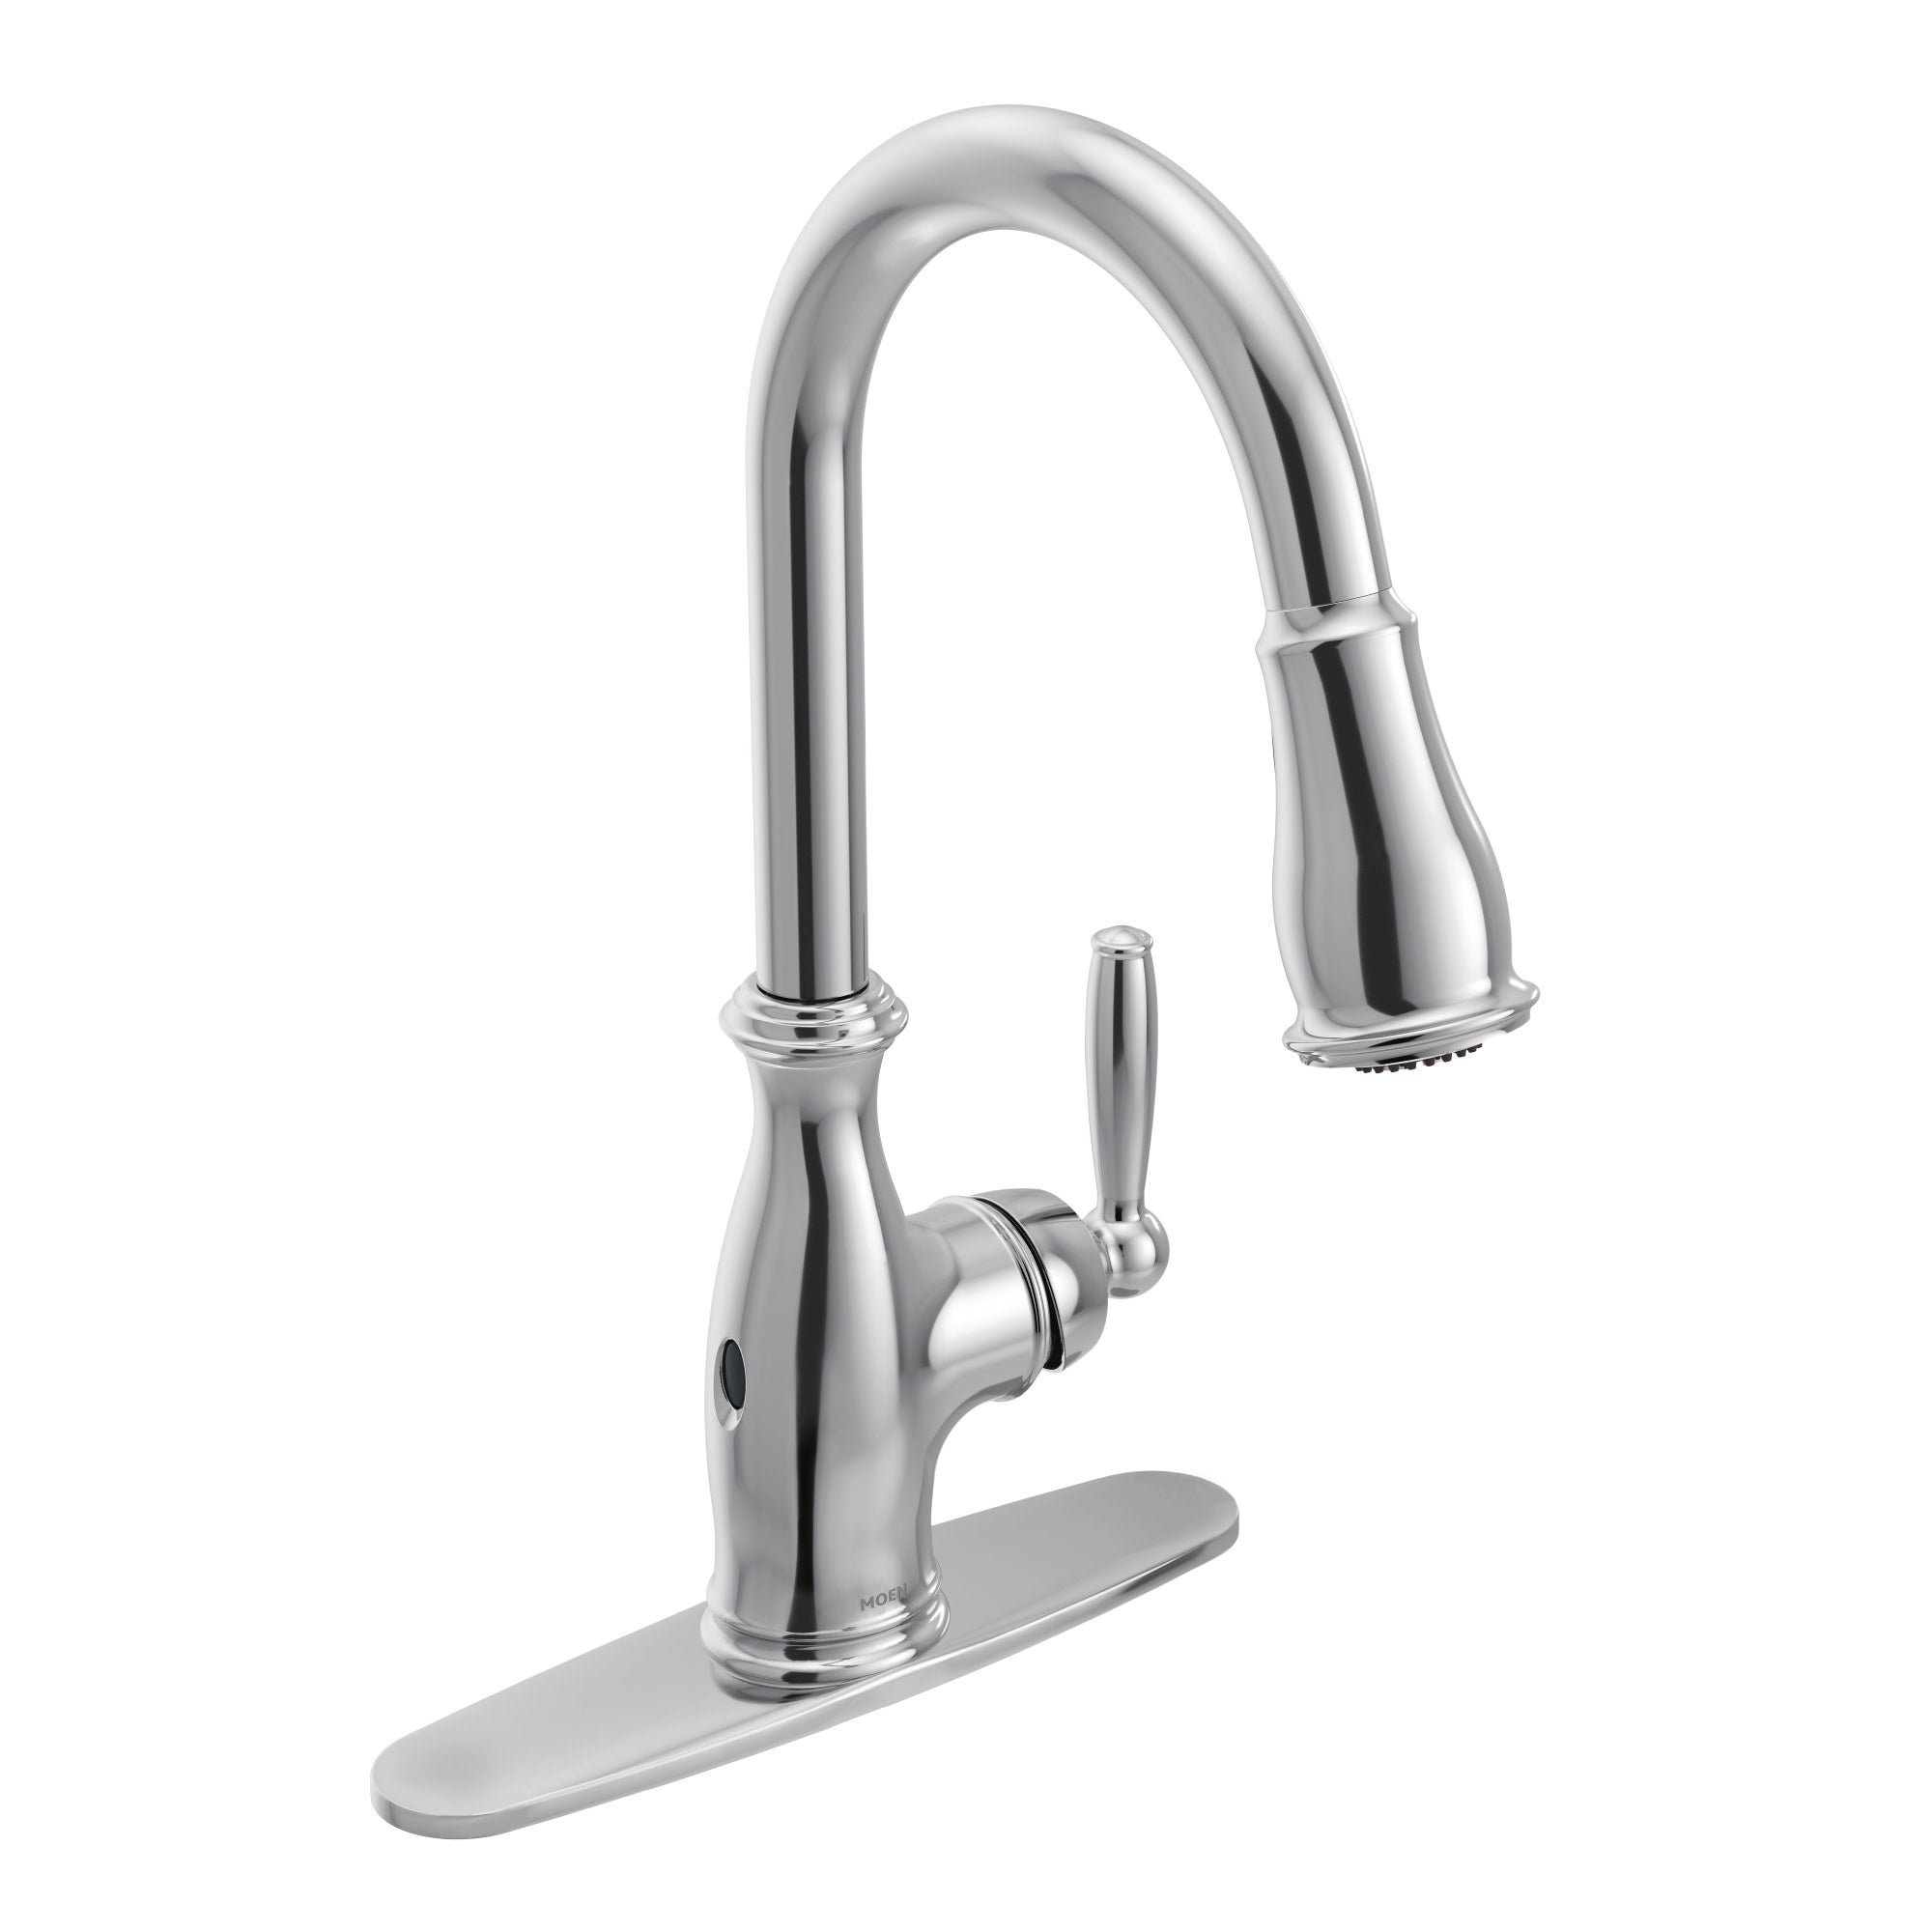 Moen 7185EW Brantford 1.5 GPM Single Hole Pull Down Kitchen Faucet with  Duralast, Duralock, MotionSense, PowerClean, and Reflex